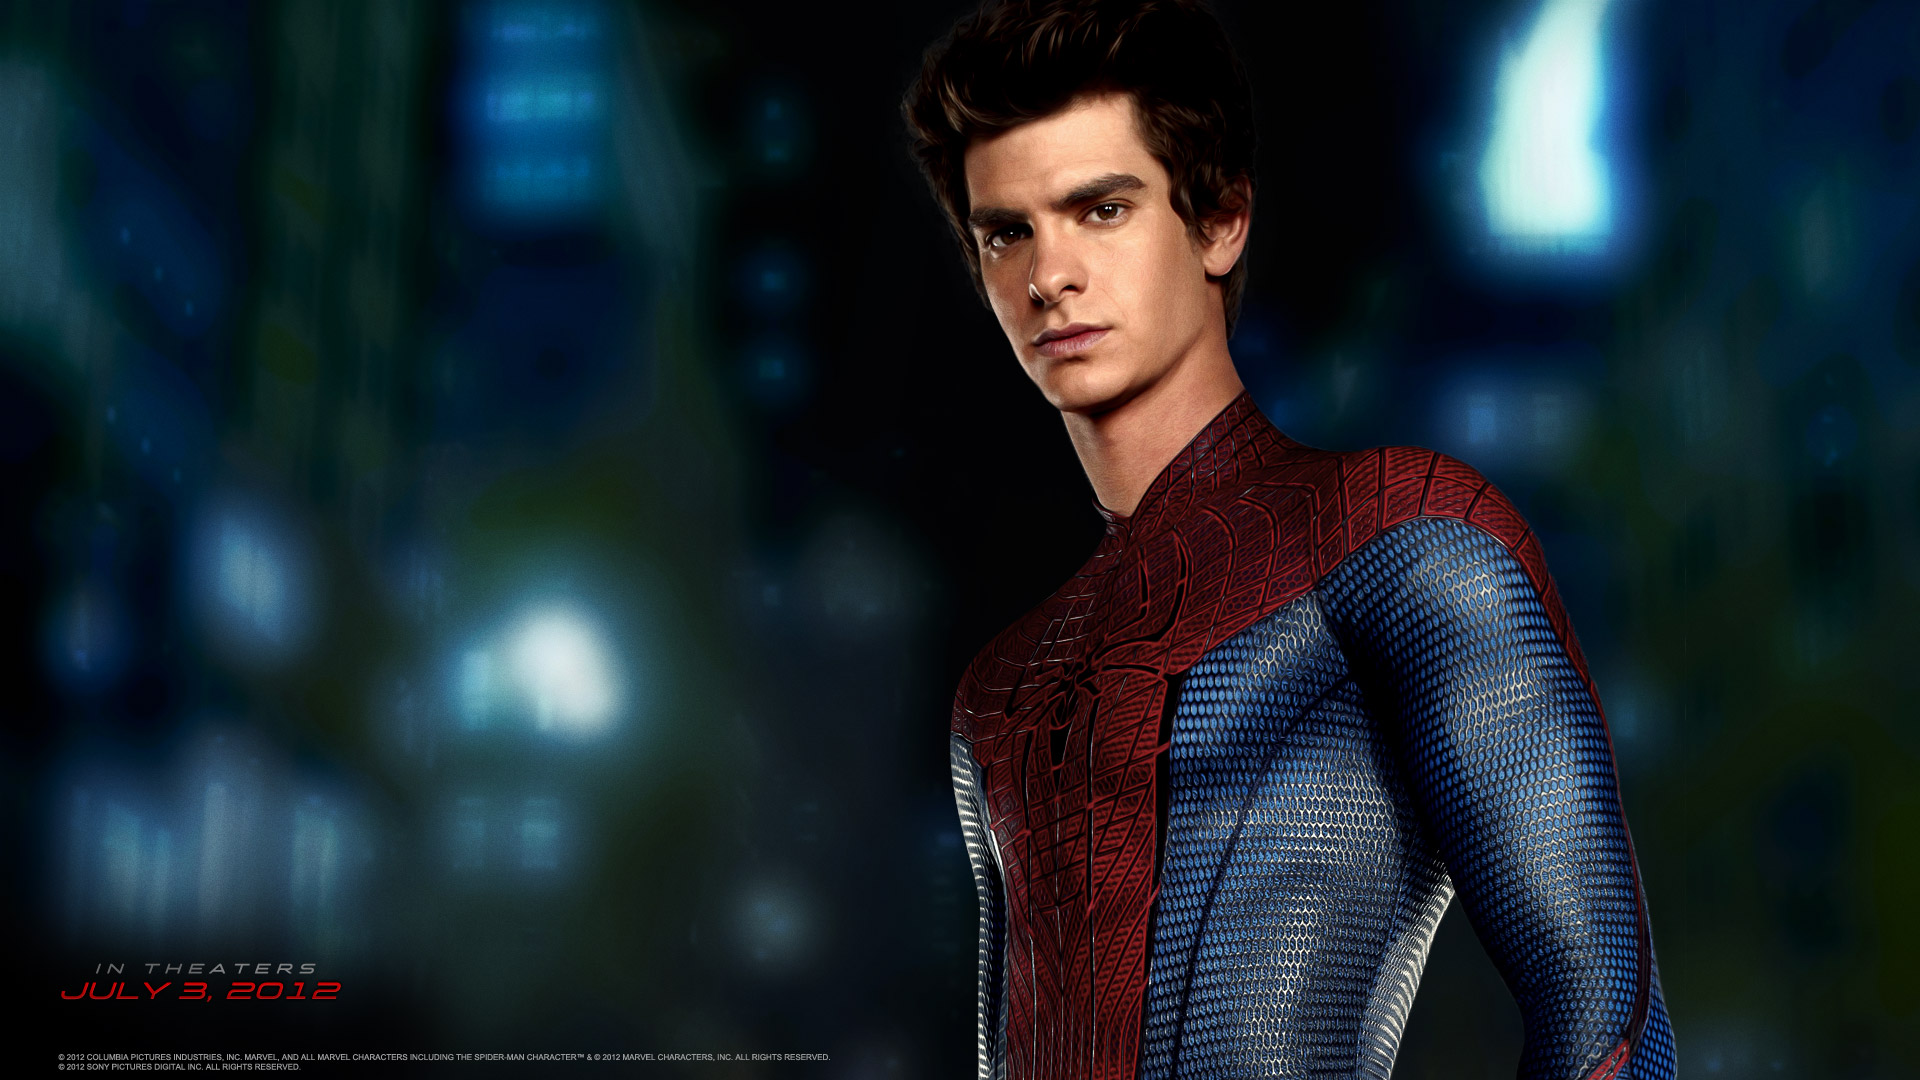 the amazing spider man wallpapers - The Amazing Spider Man HD desktop wallpaper